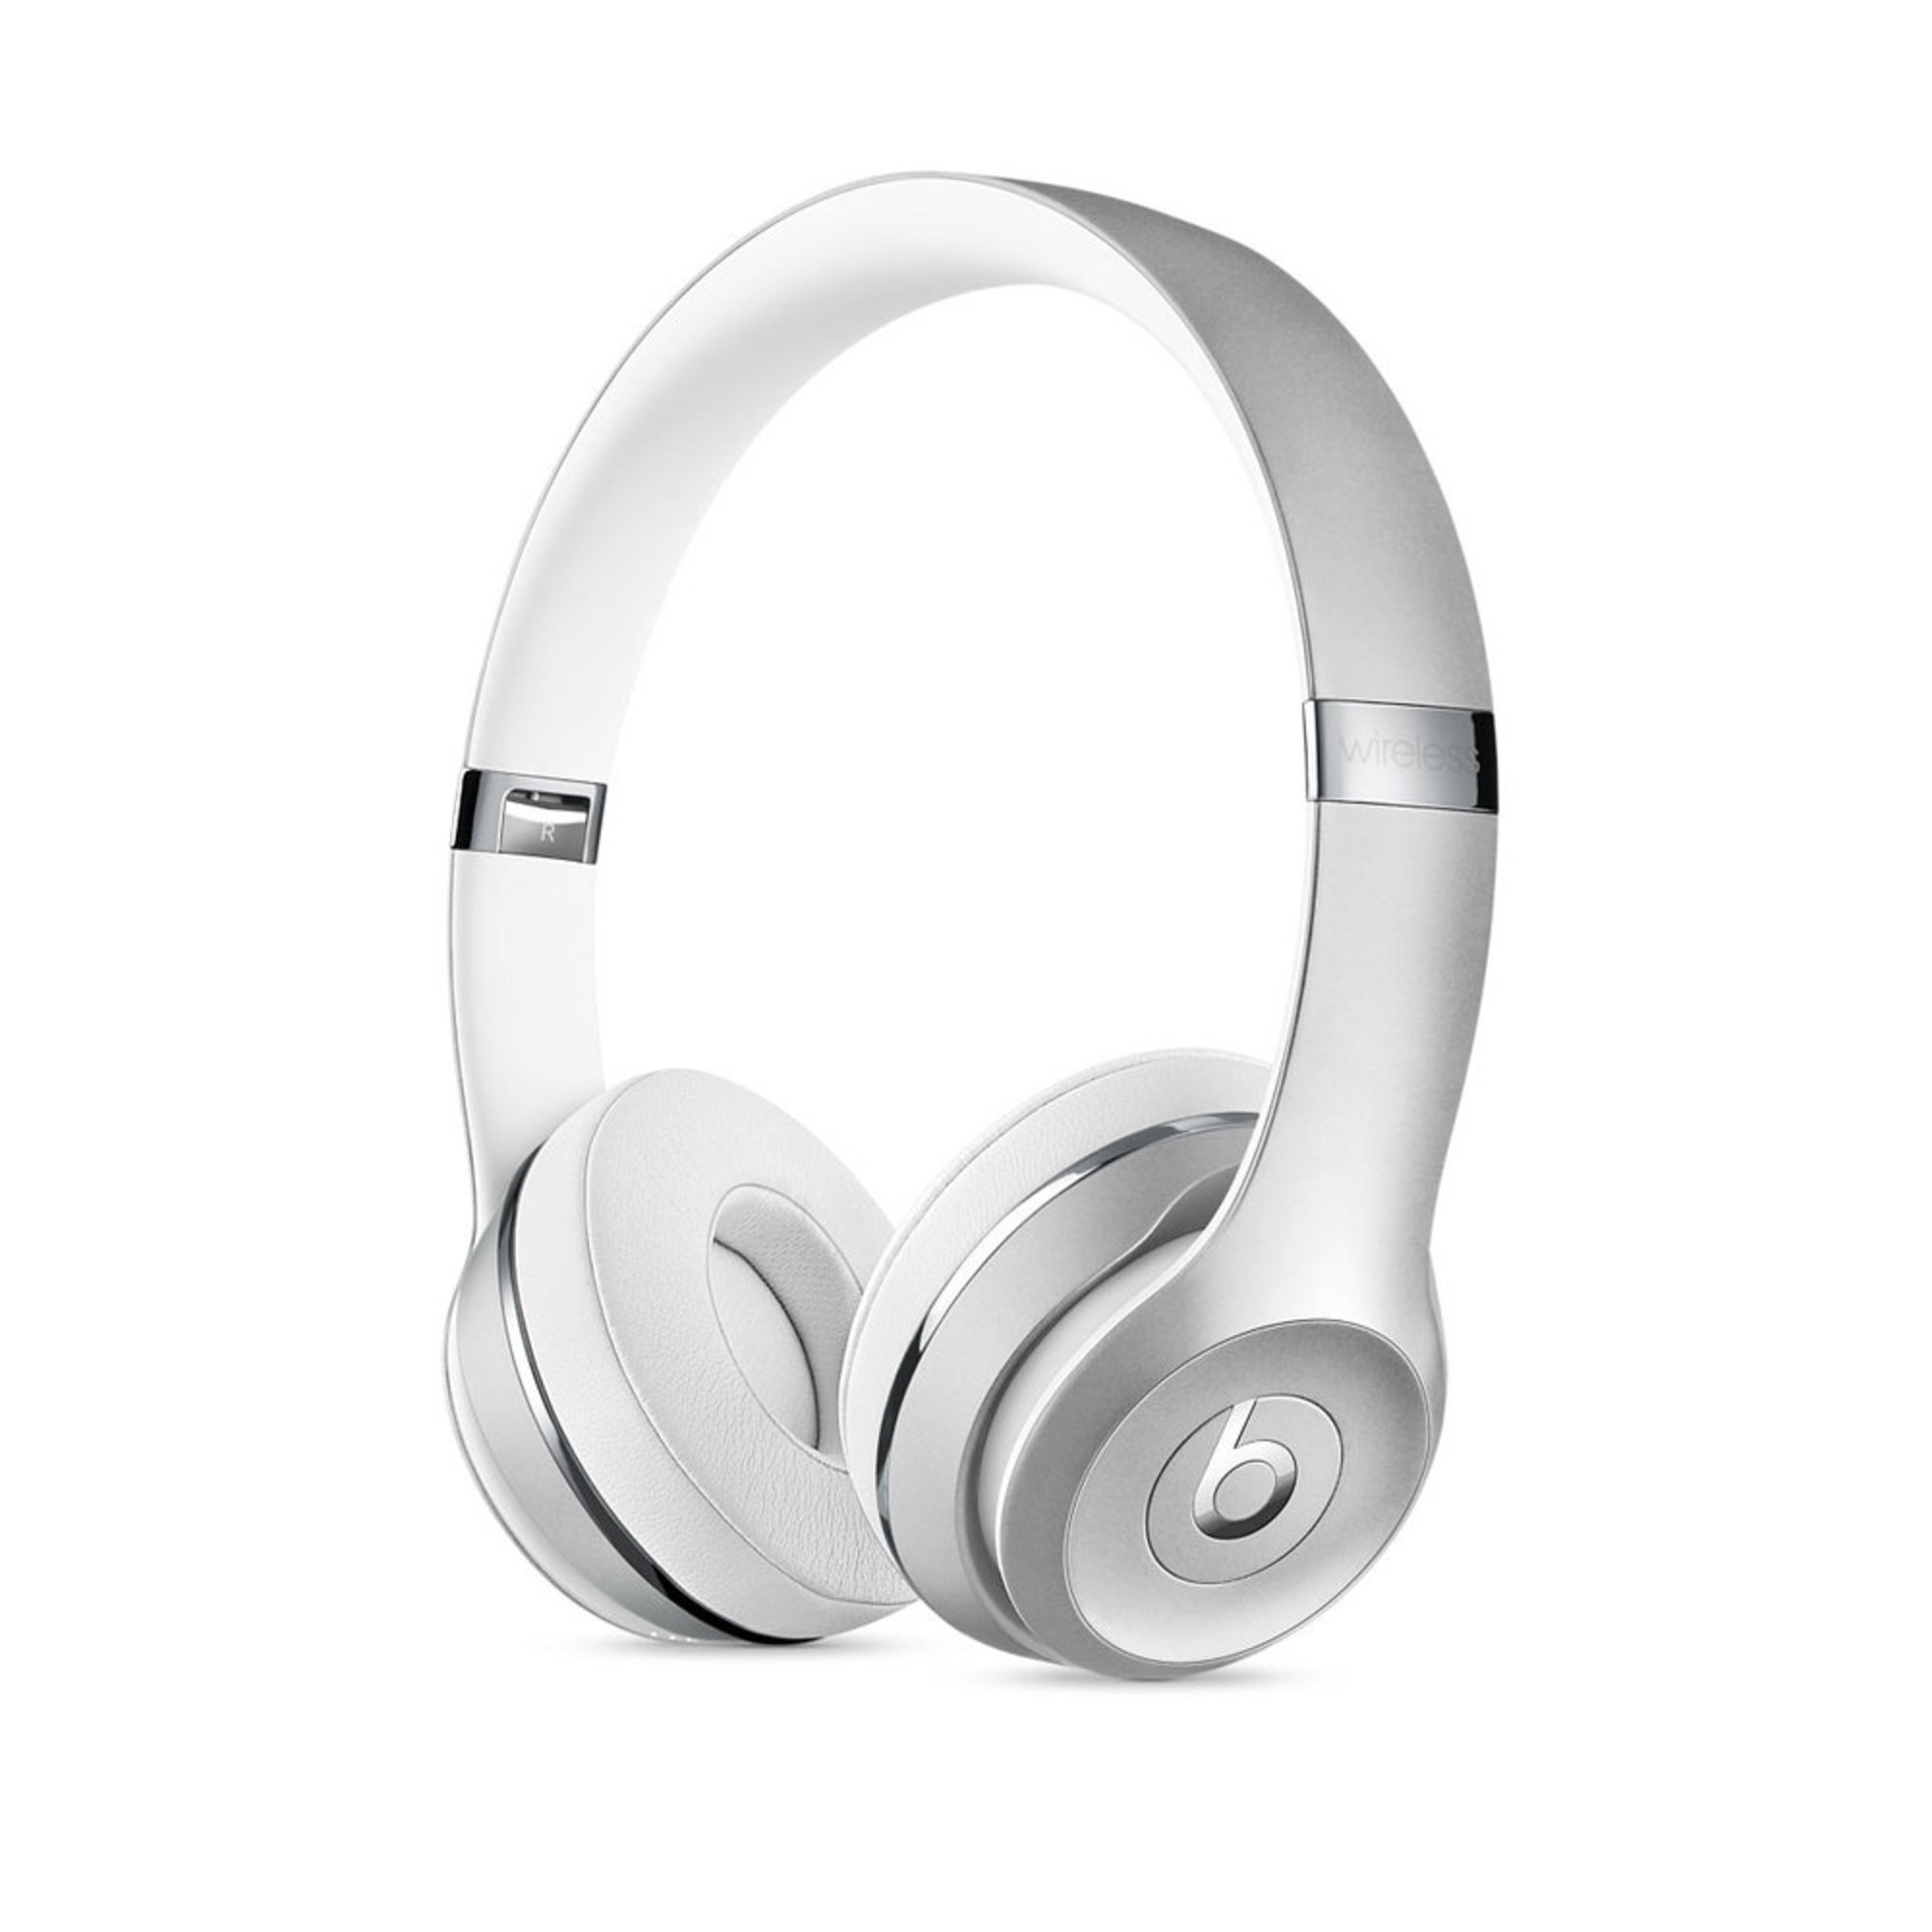 Headphones Shop Your Navy Exchange Official Site Headset Bluetooth Jbl X Under Armour Earphone Headphone Wireless Handsfree Beats By Dr Dre Solo 3 Silver Mneq2ll A